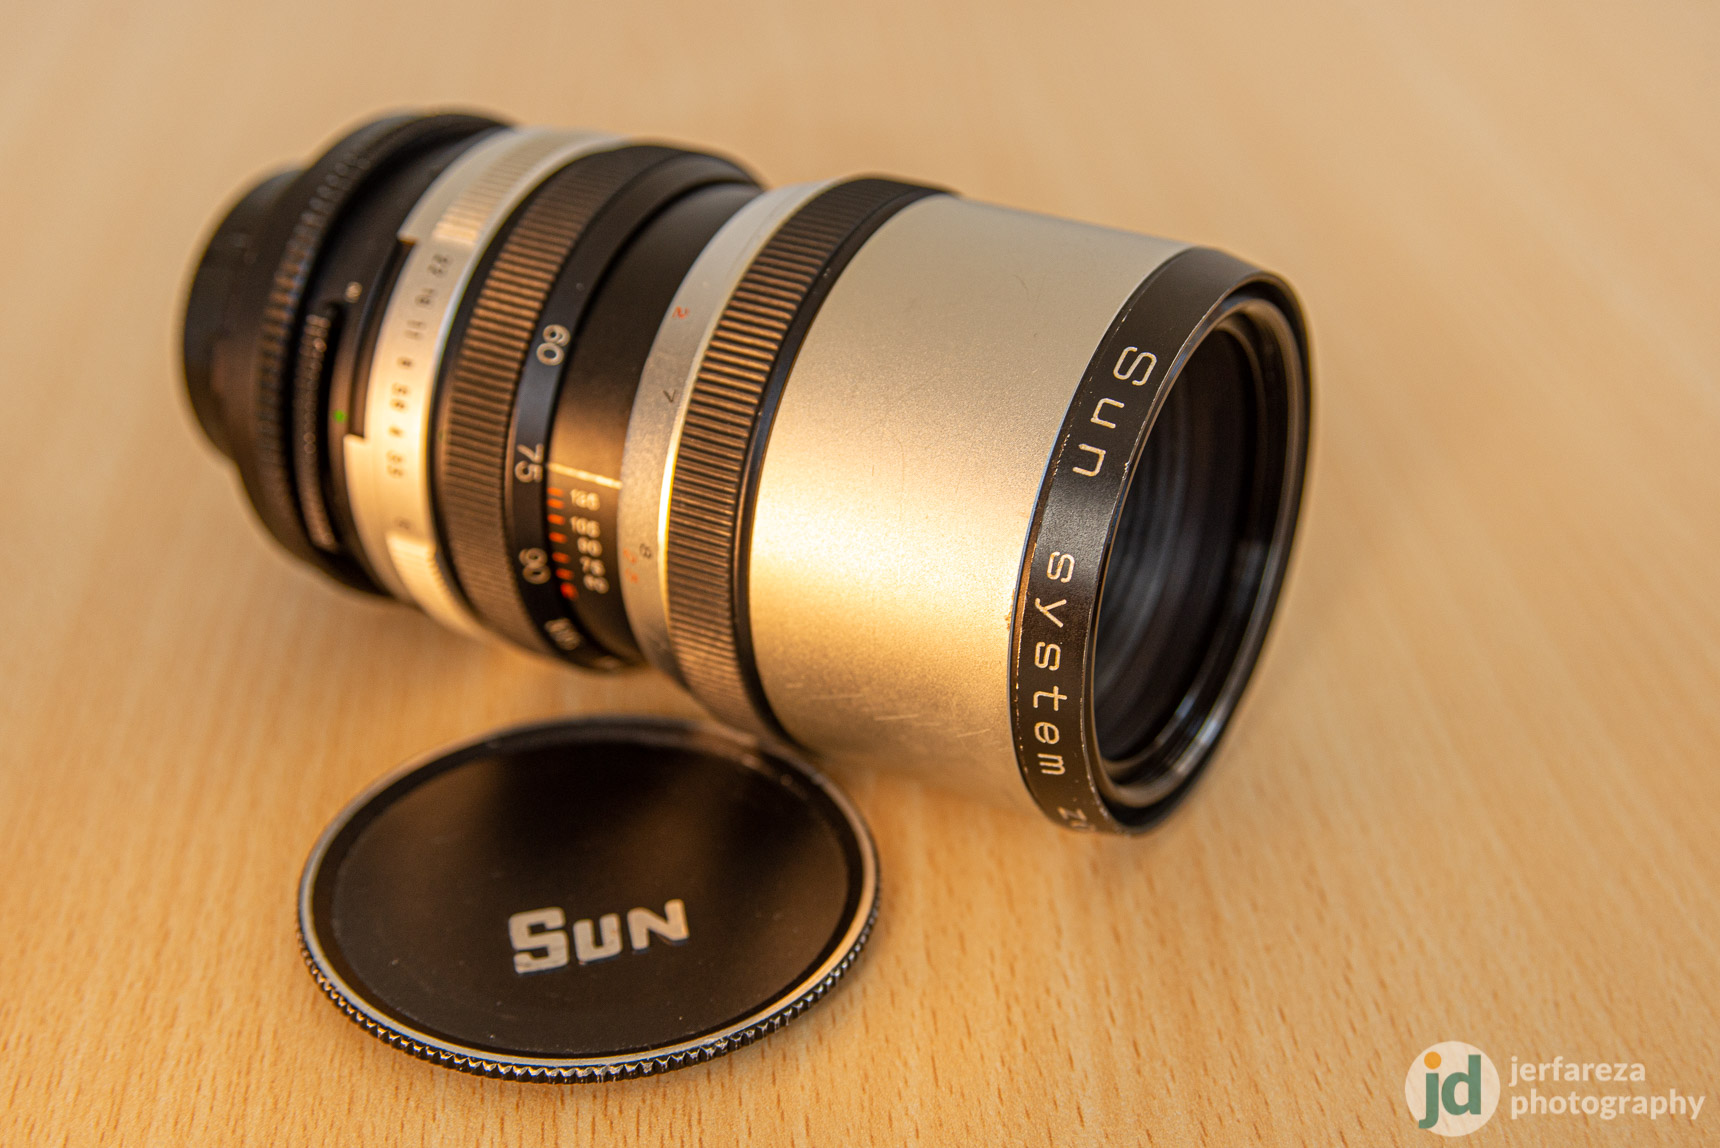 [Lens Review] Sun System 65-130mm f/3.5